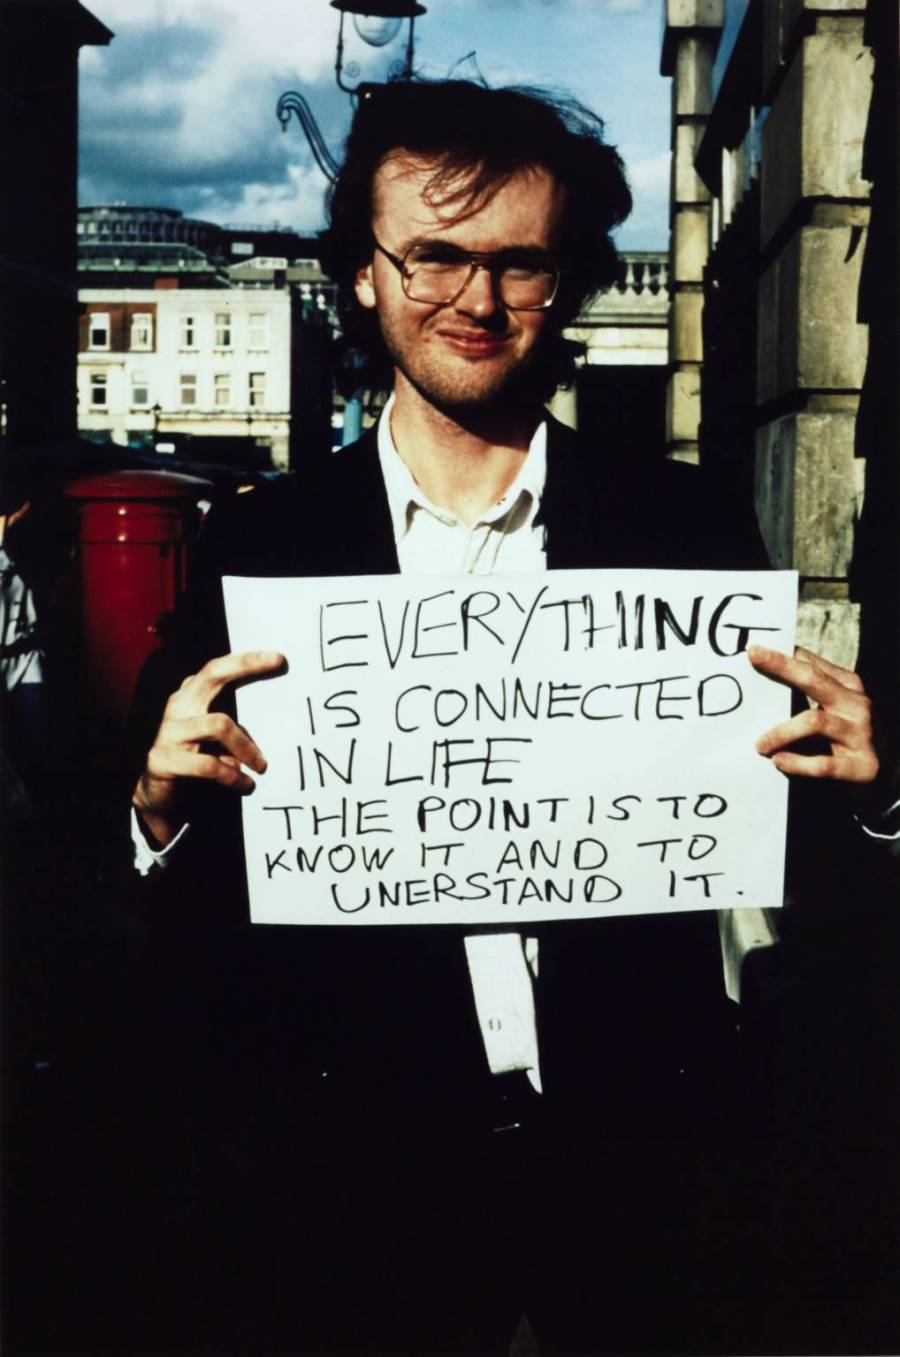 """Gillian Wearing, """"Everything is connected in life..."""", 1992-93. Chromogenic print on paper. Courtesy of the artist and Tate, London."""